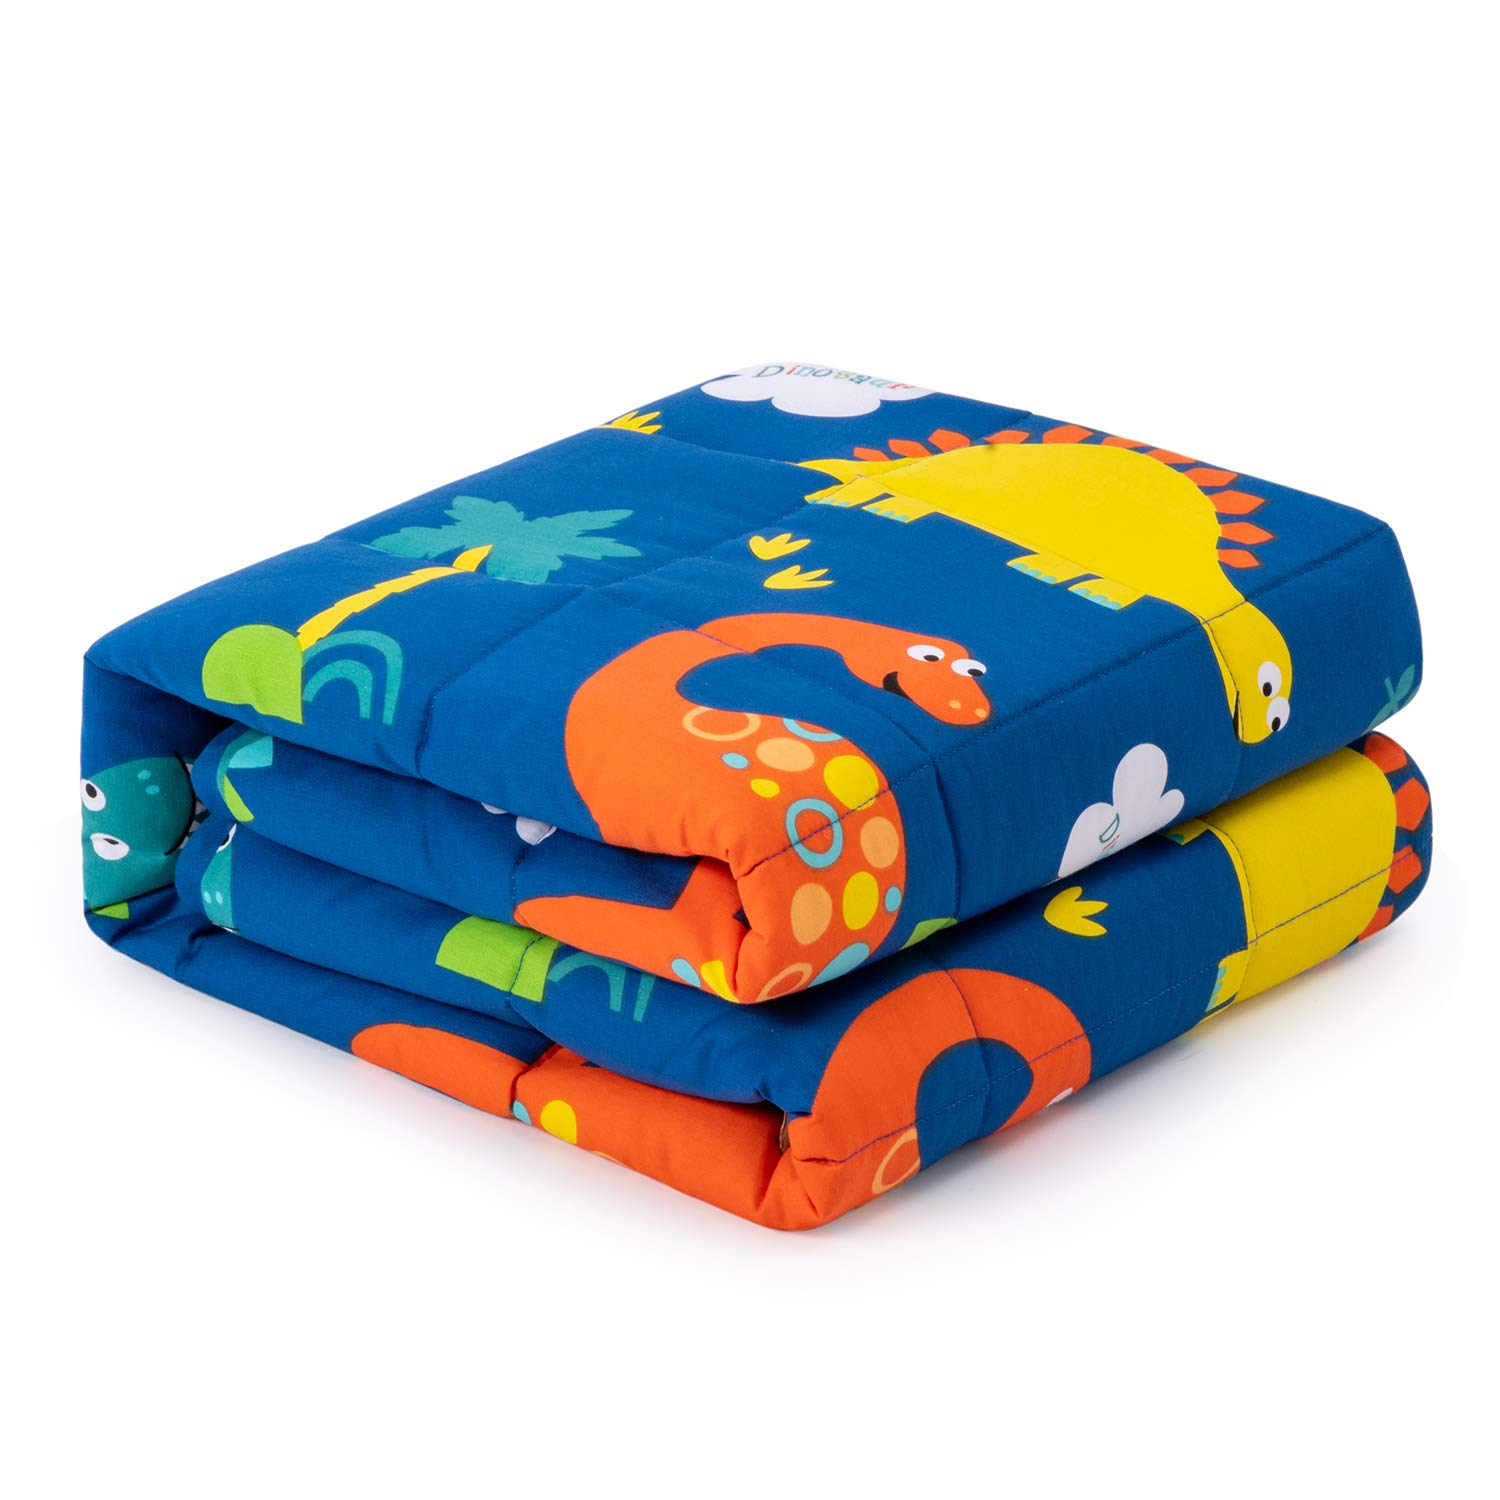 Anjee Kids Weighted Blanket 5lbs for Children with a Cotton Pillowcase, Breathable Cotton Fabric with Cute Dinosaurs Cartoon Pattern Help Better Sleep, 36 x 48 Inches, Navy Blue